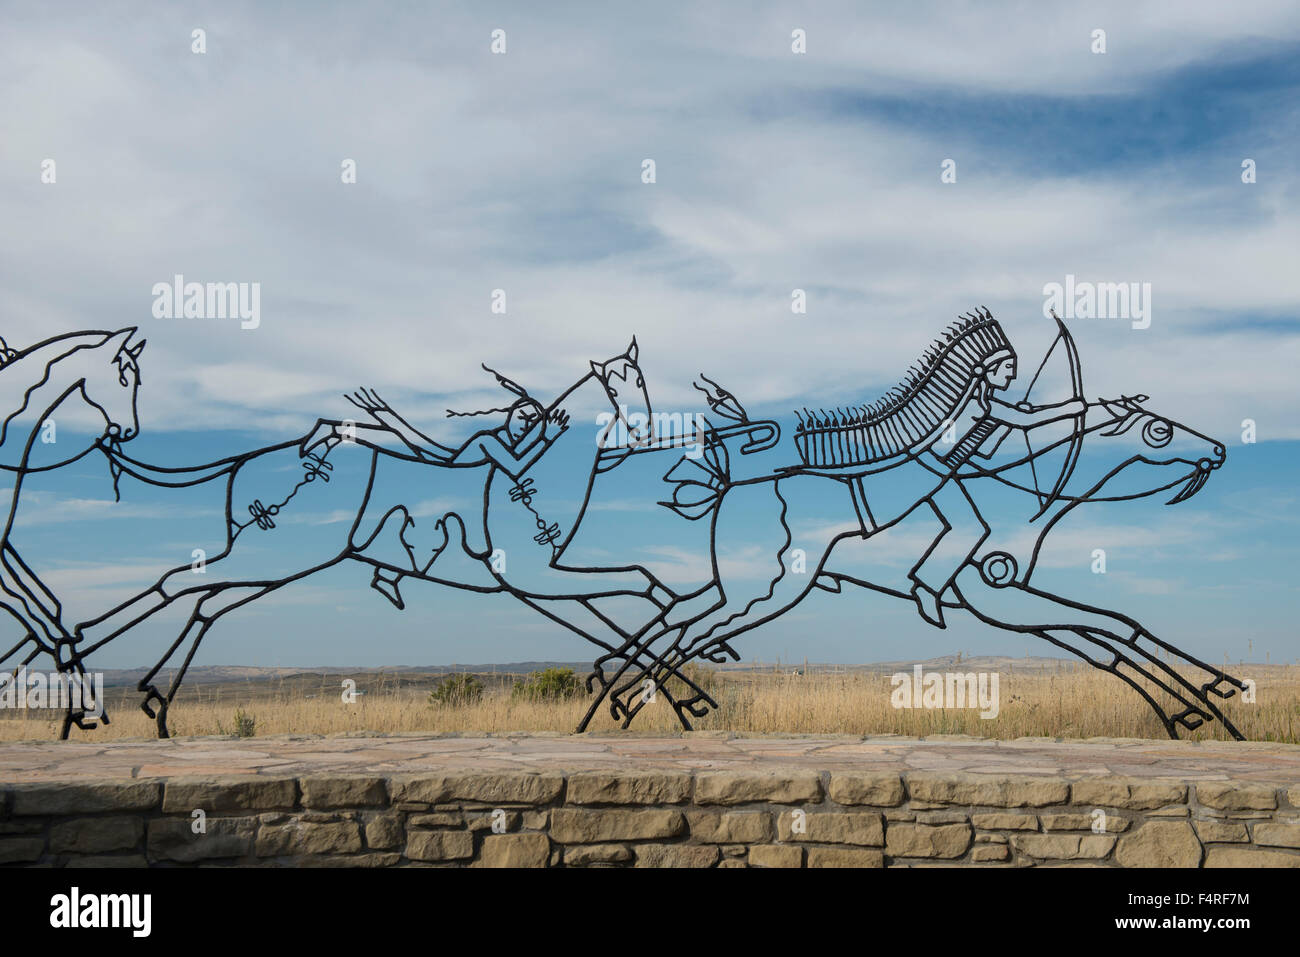 USA, Montana, Crow Indian Reservation, Great plains, Little Bighorn Battlefield National Monument - Stock Image